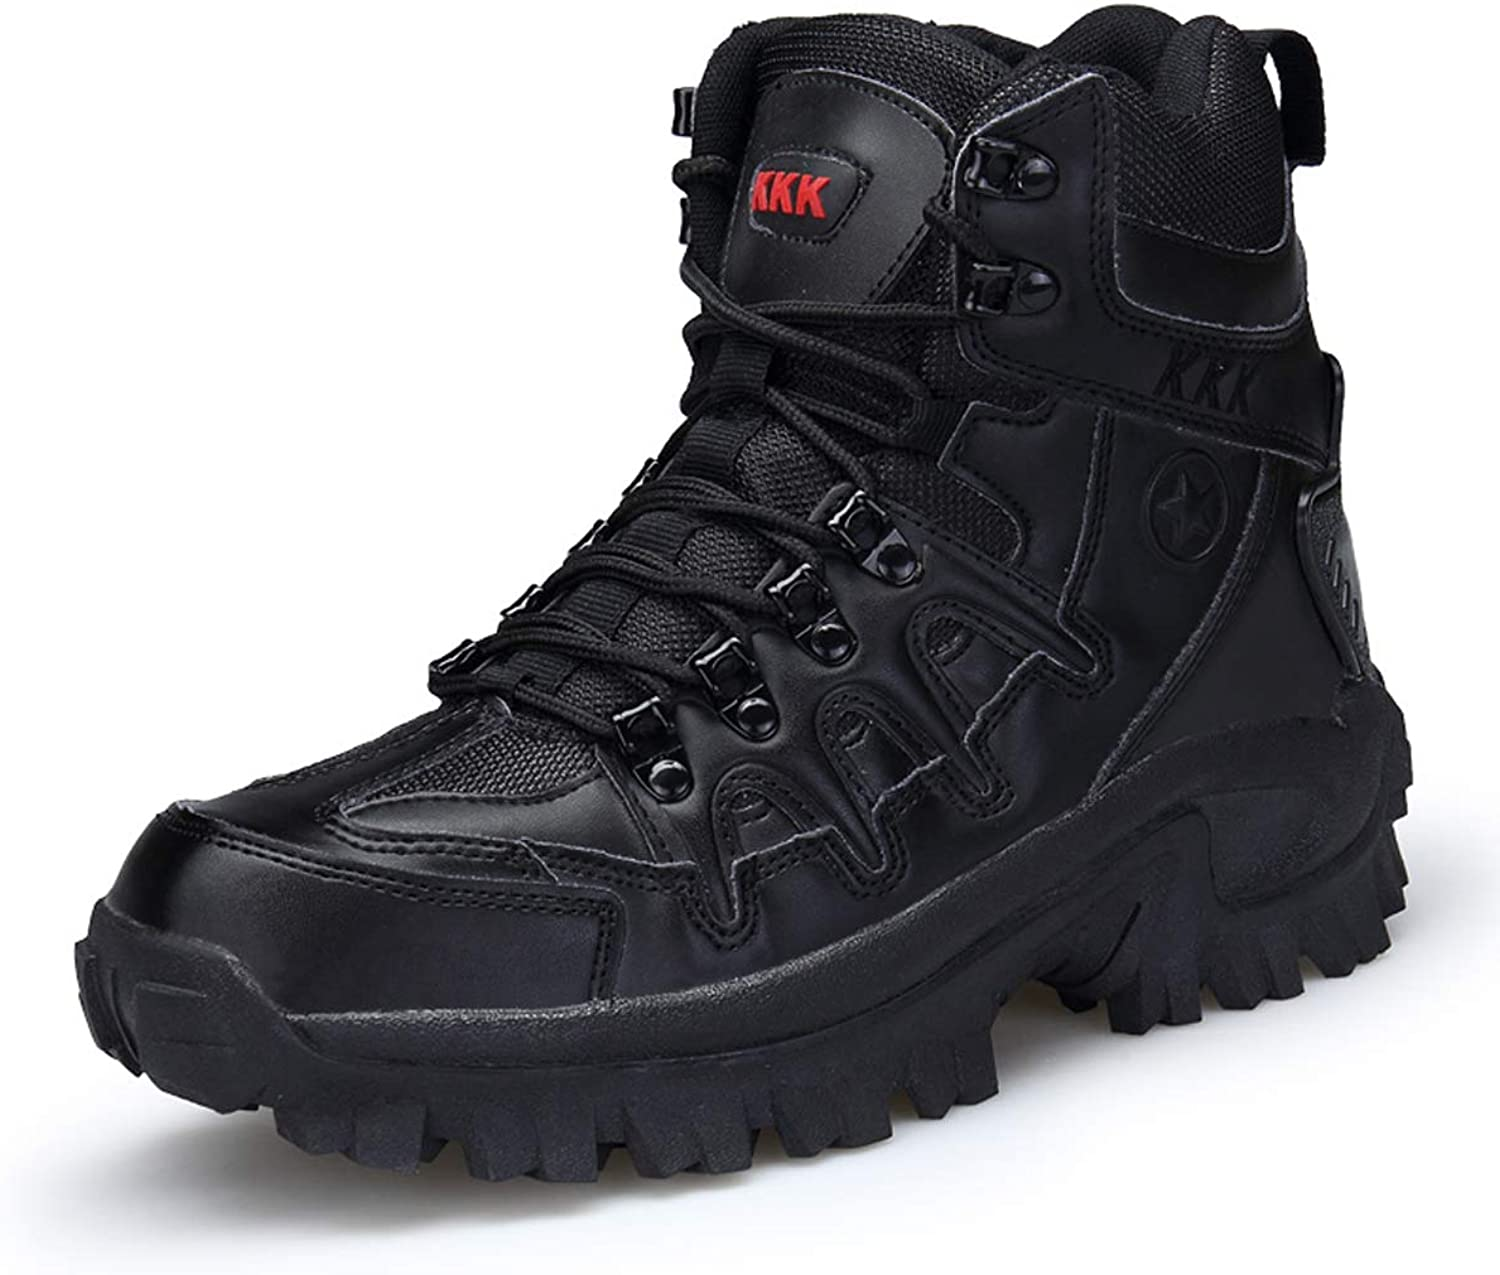 Men's Combat Boots 2019 Spring New High To Help Outdoor Security Boots Wear Strong Military Boots Non-slip